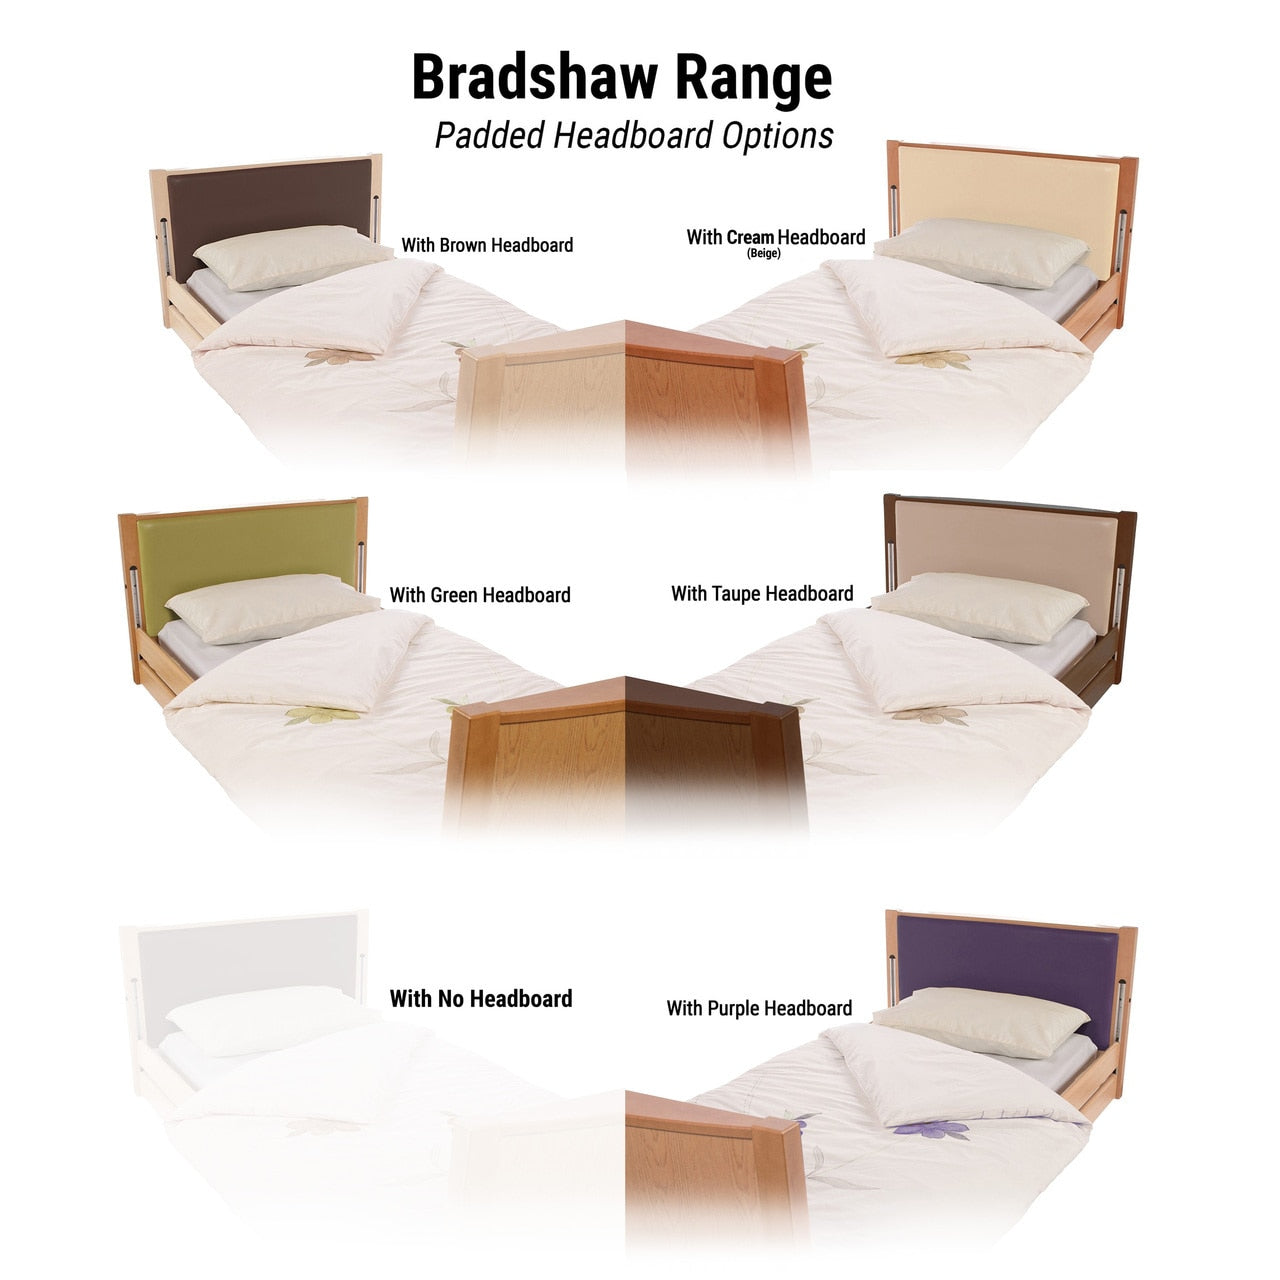 Padded Headboard For Sidhil Bradshaw Bed